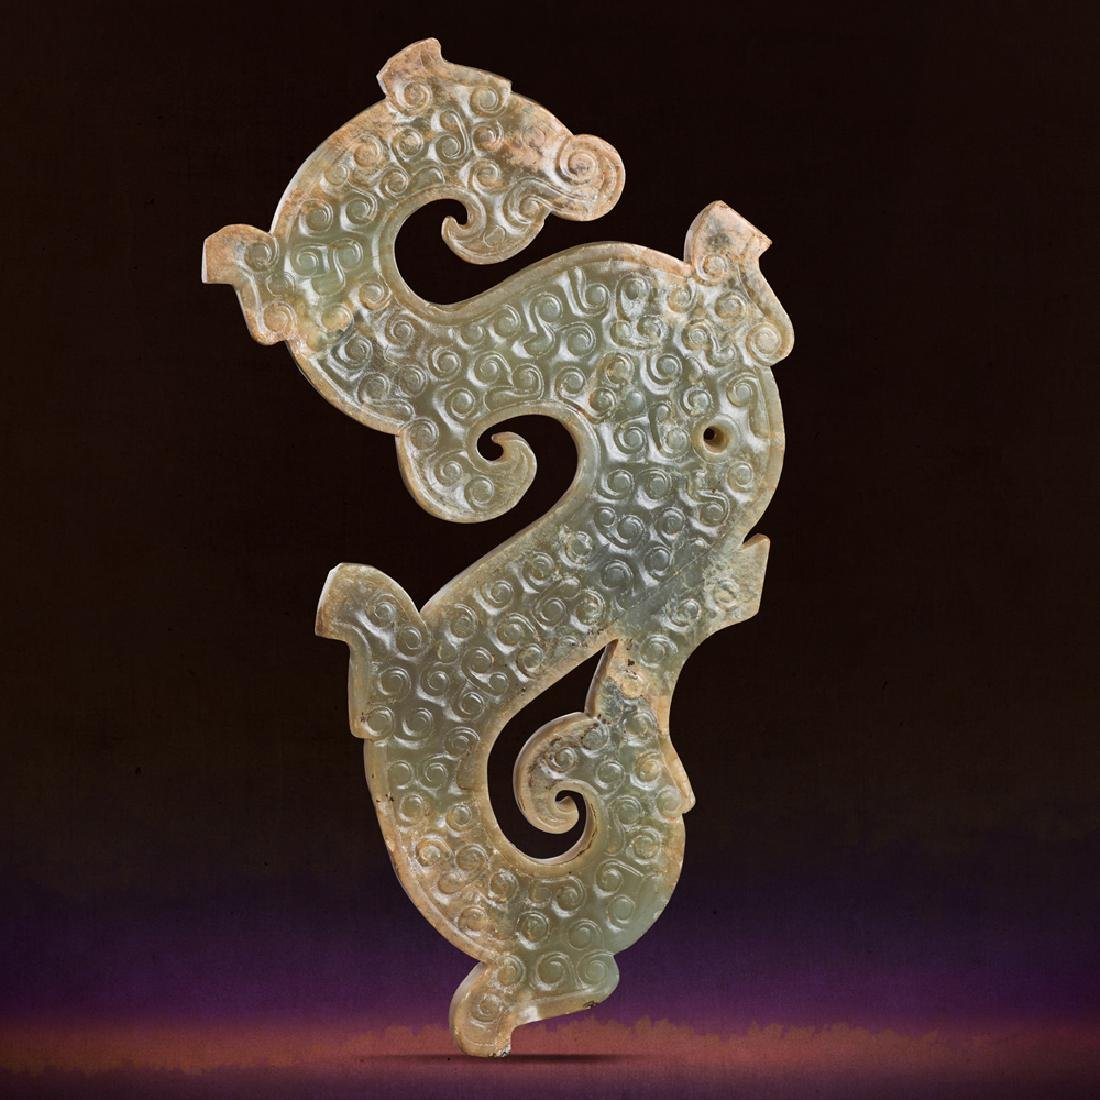 A CHINESE PALE CELADON JADE 'DRAGON-SHAPED' PENDANT